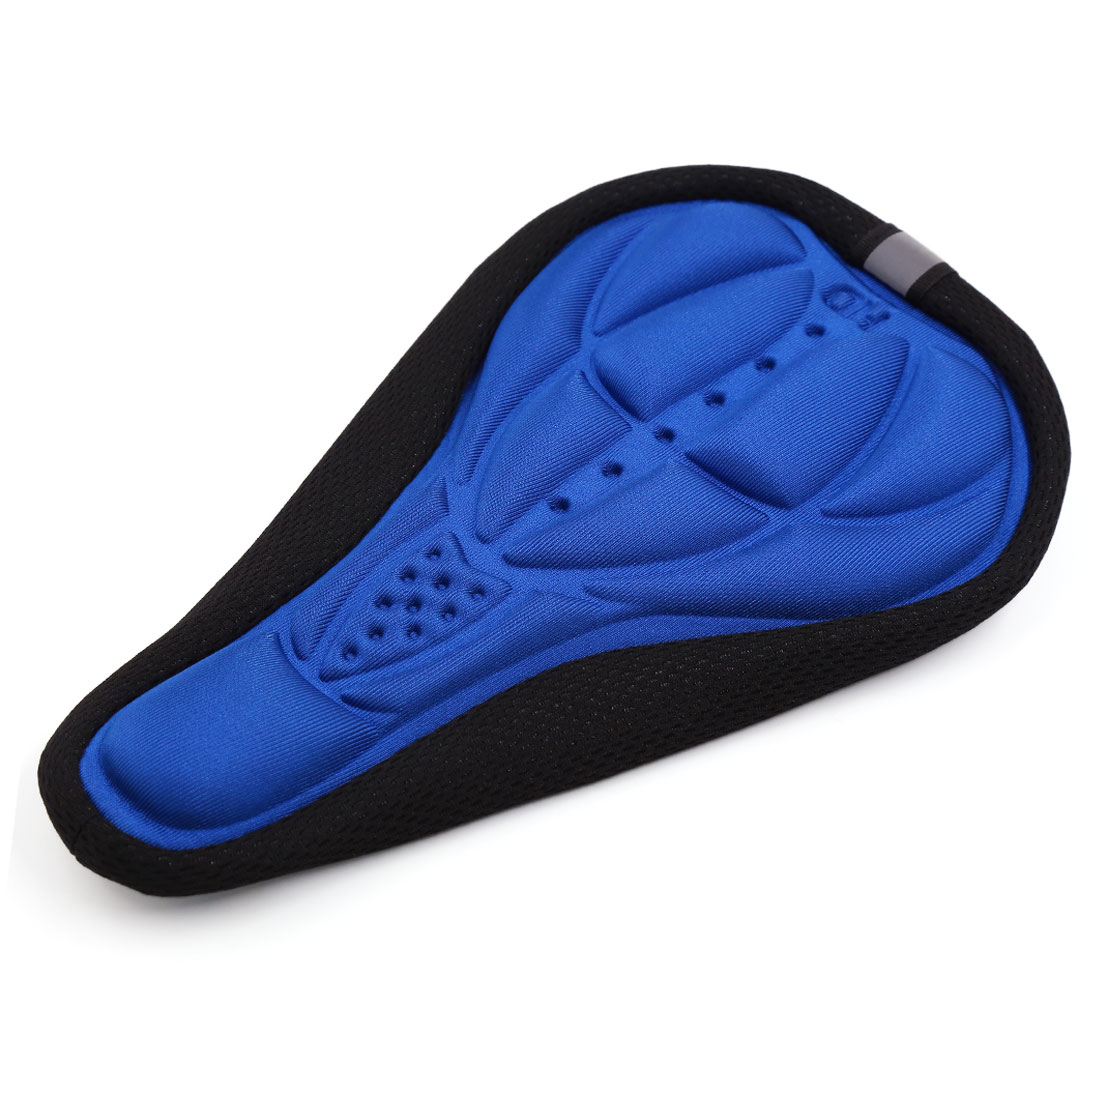 Soft Bike Seat Pad Cover Breathable Bicycle Saddle Cover Cushion Blue Black